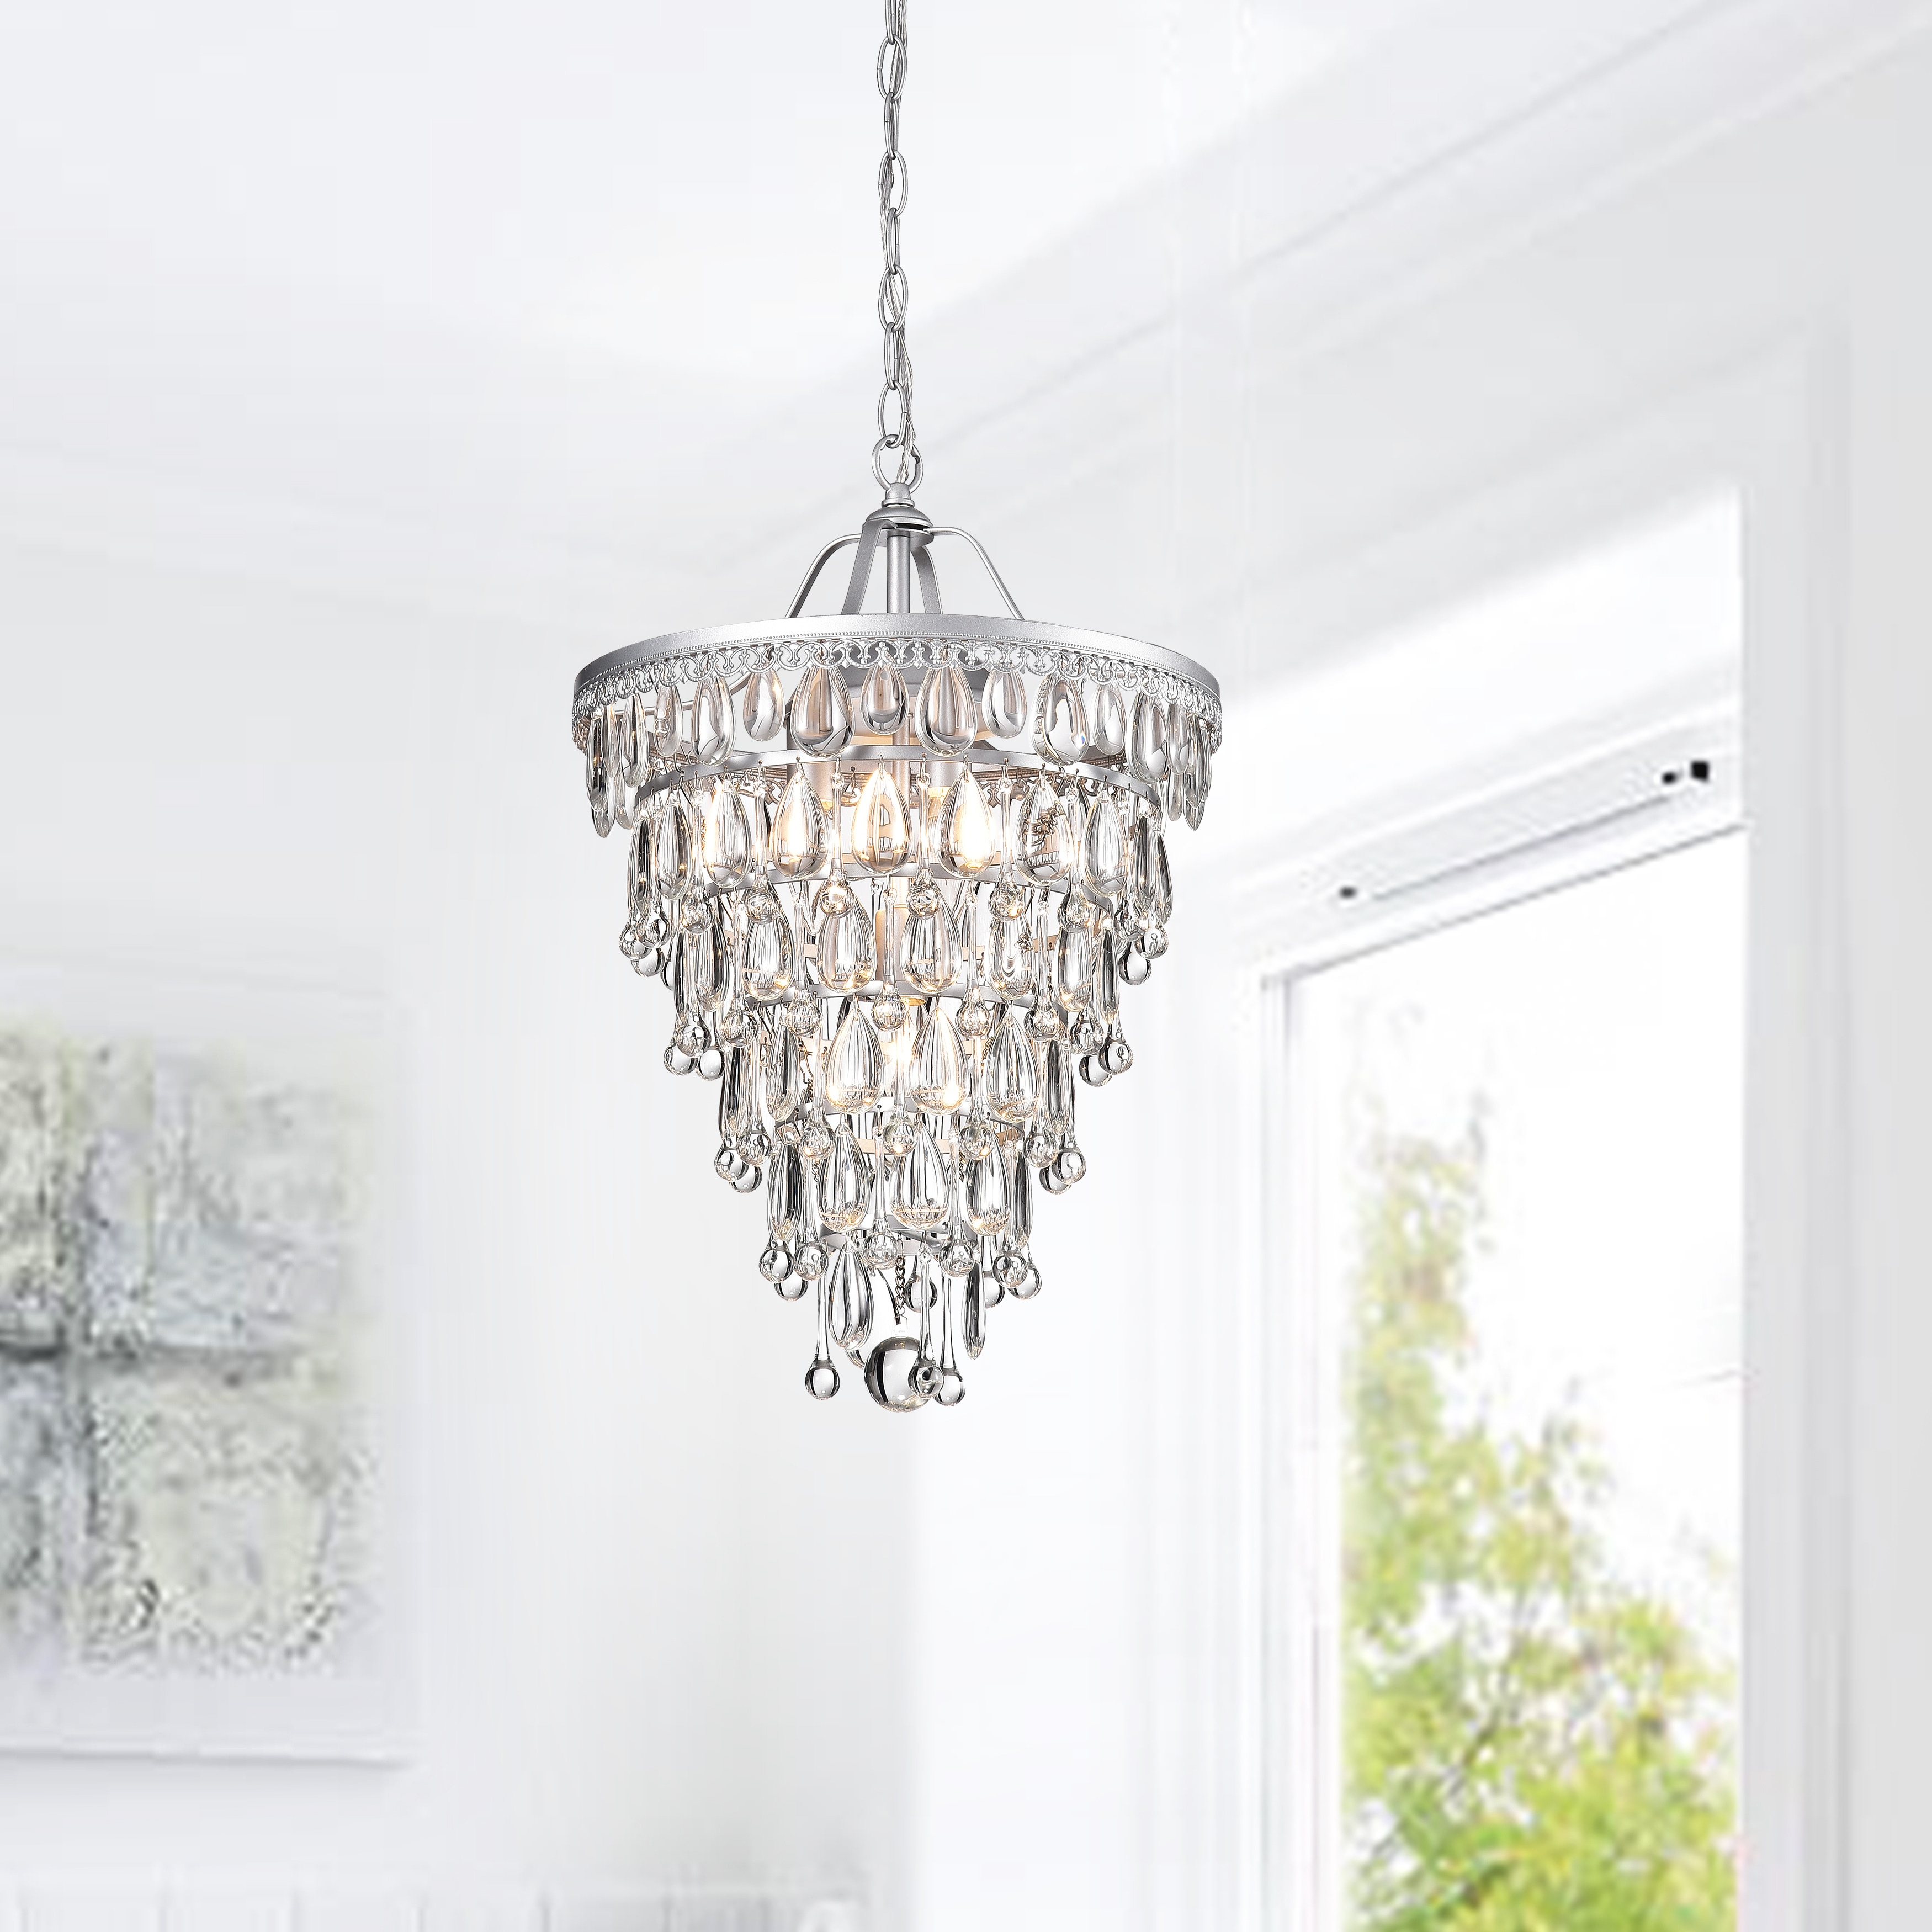 Installing the chandelier yourself